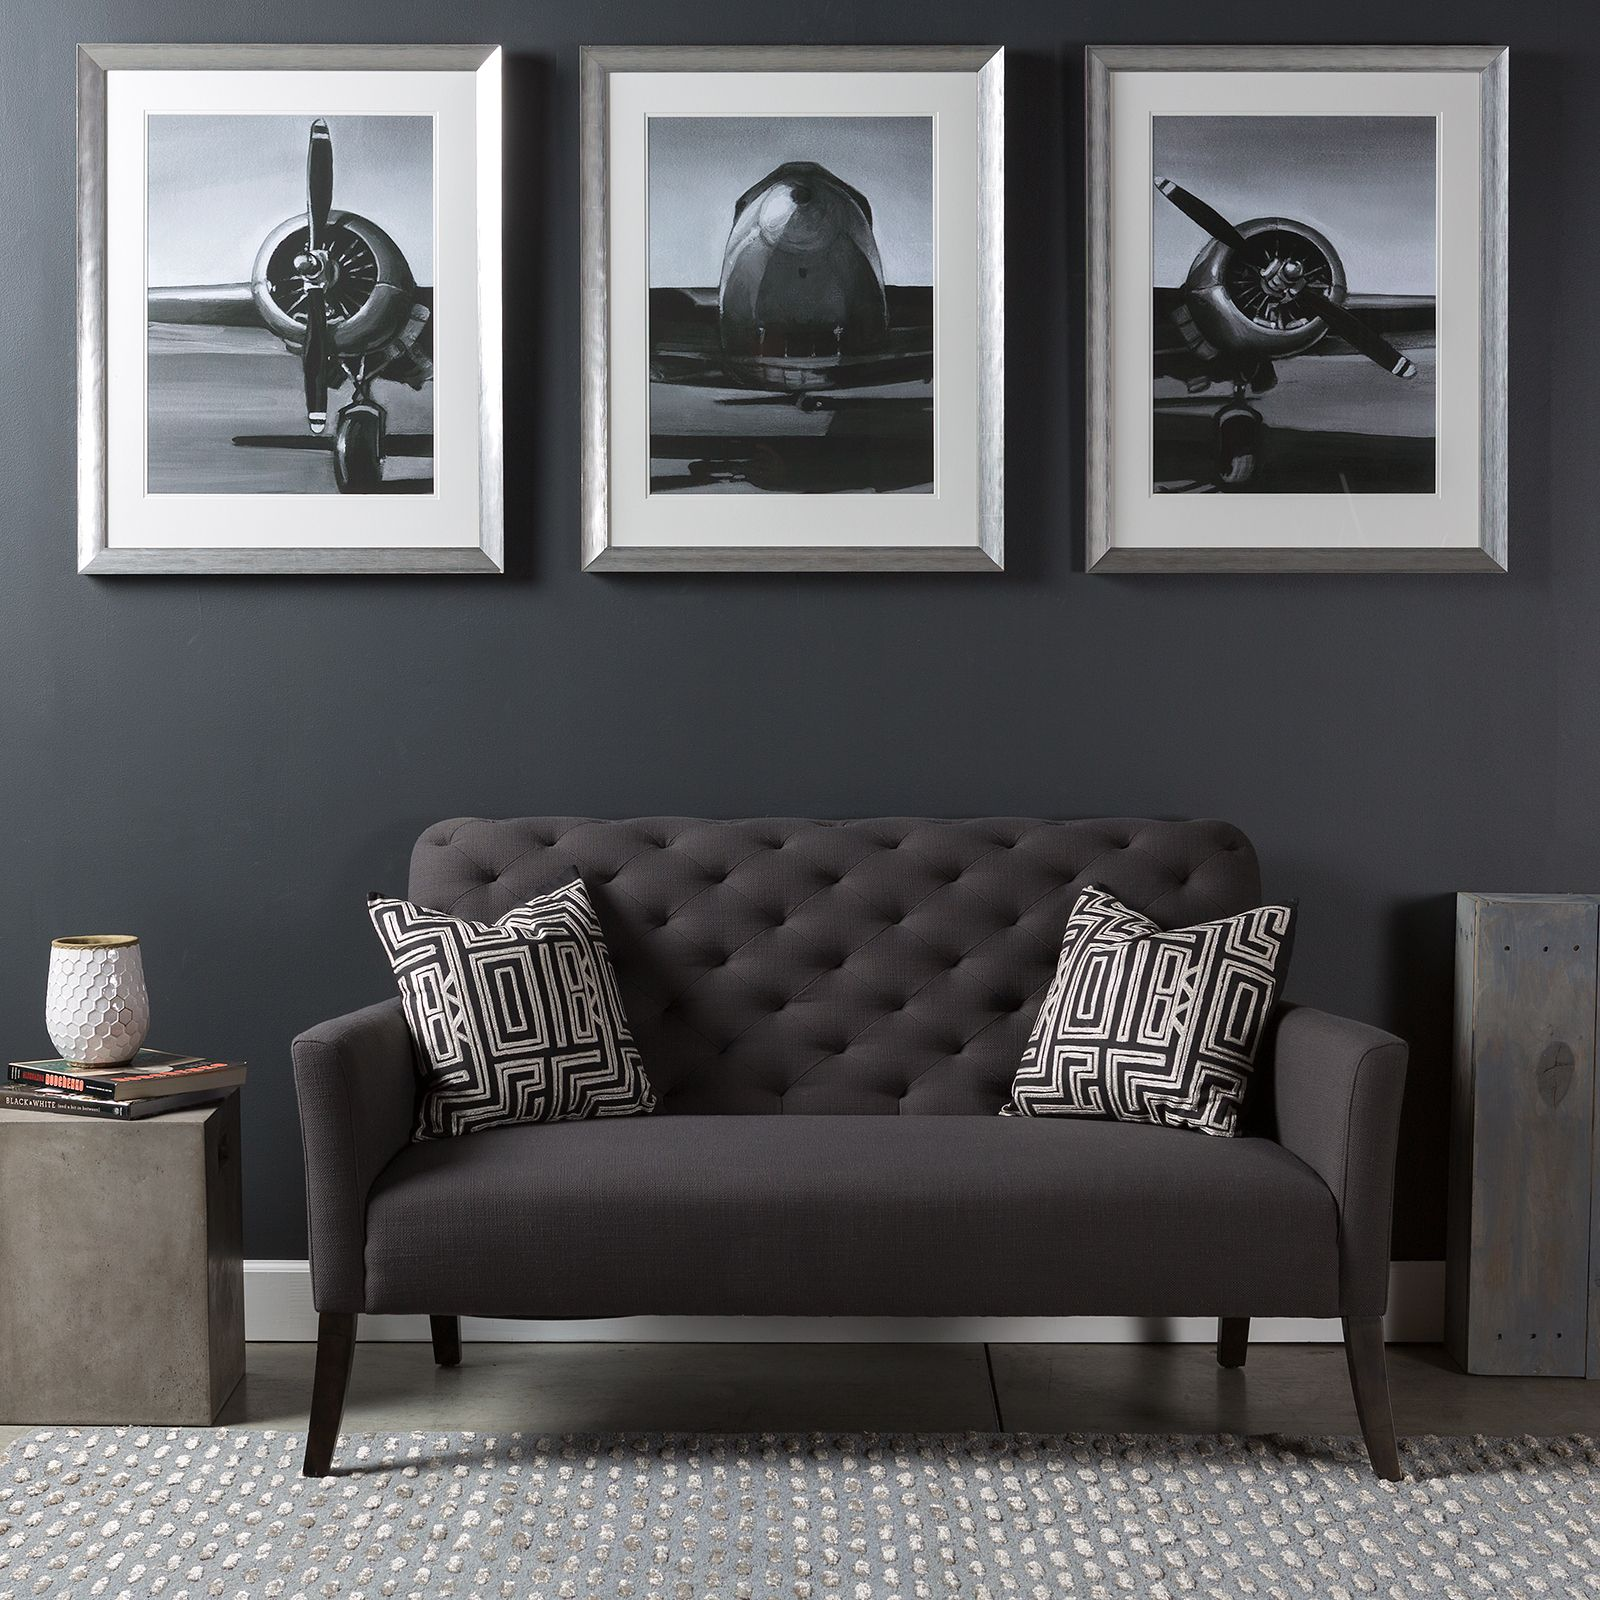 triptych wall art piece with a modern industrial flare; a series